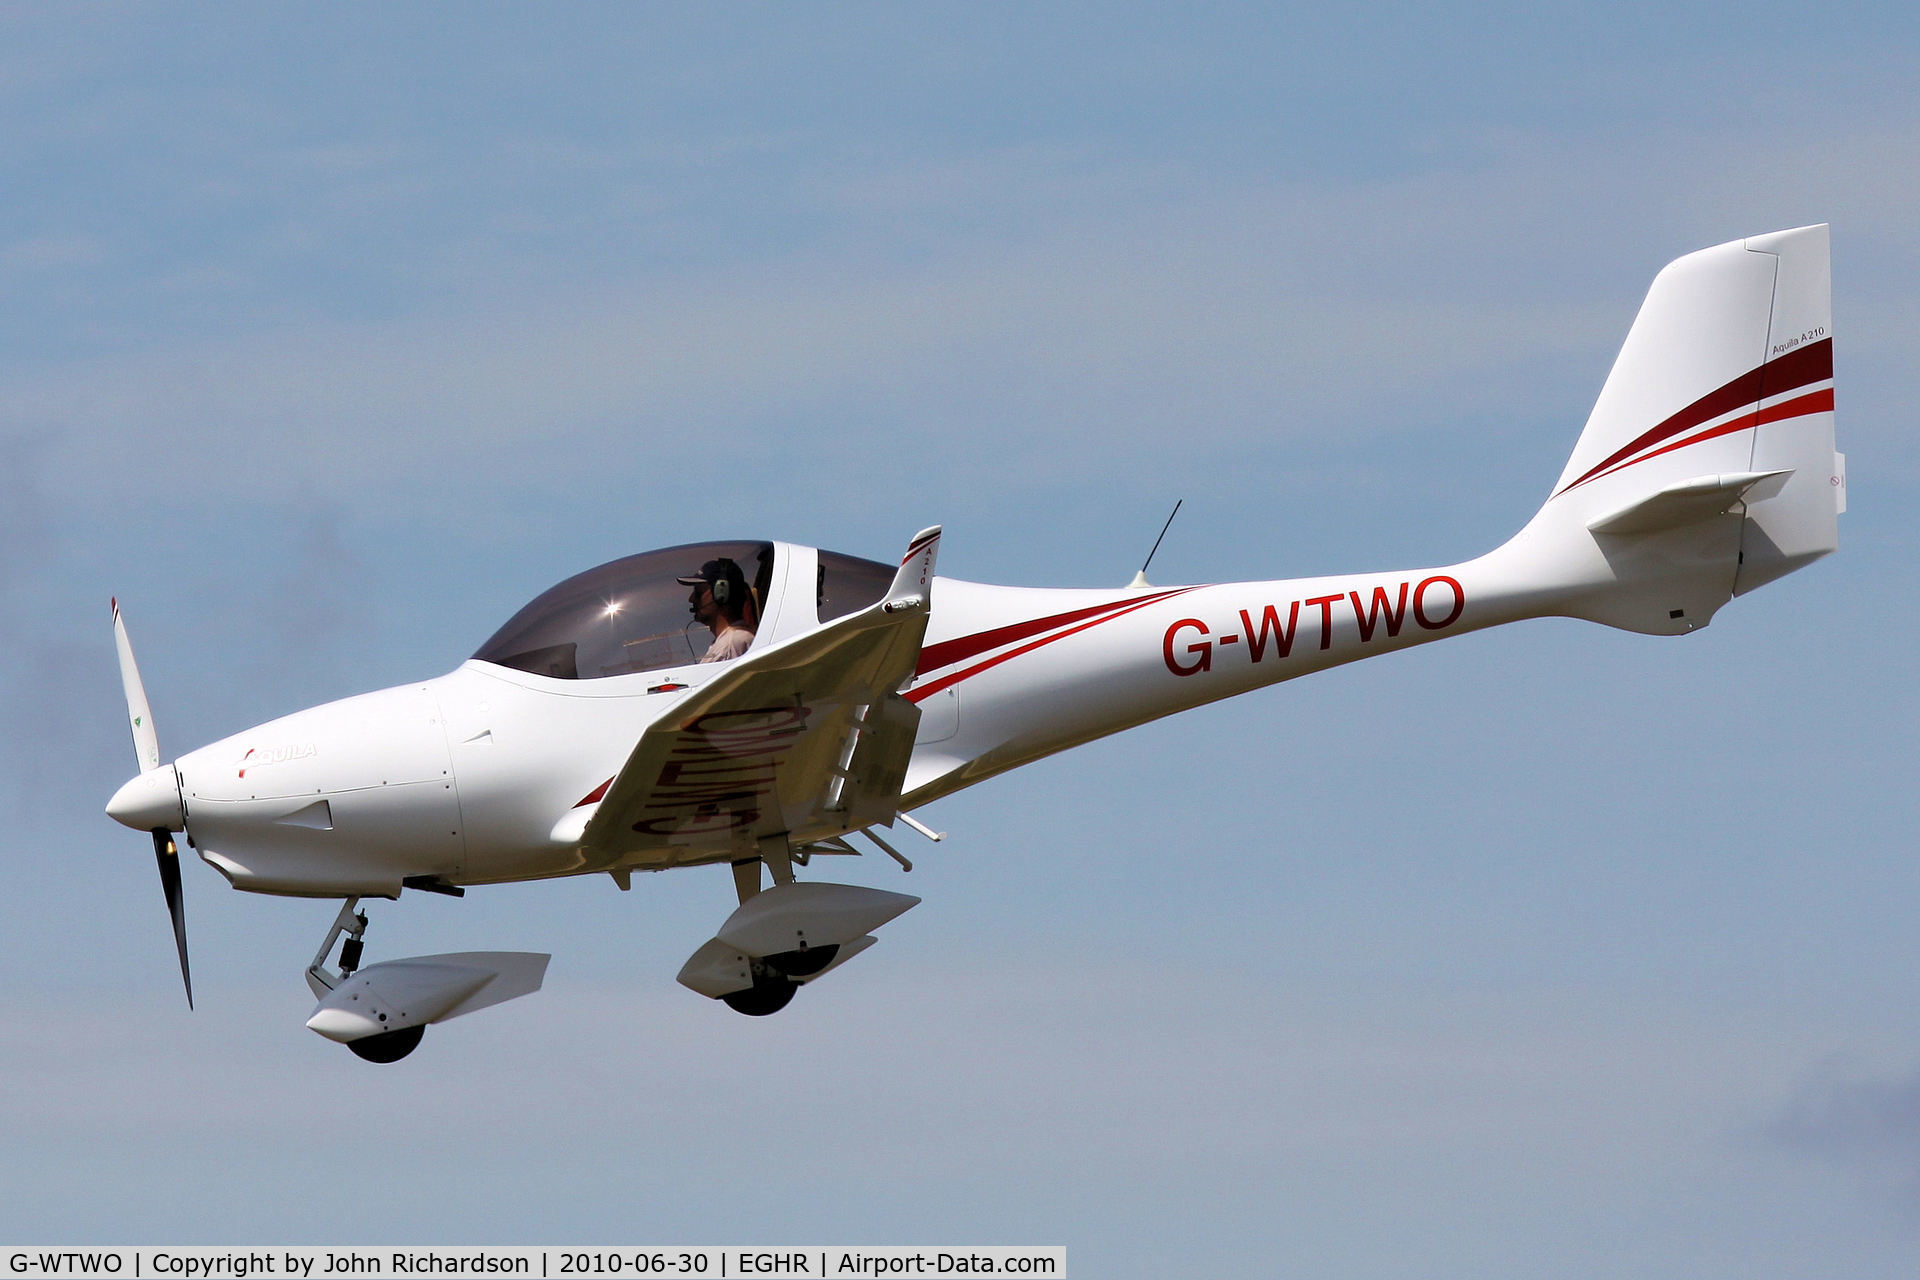 G-WTWO, 2007 Aquila A210 (AT01) C/N AT01-176, Finals into Goodwood